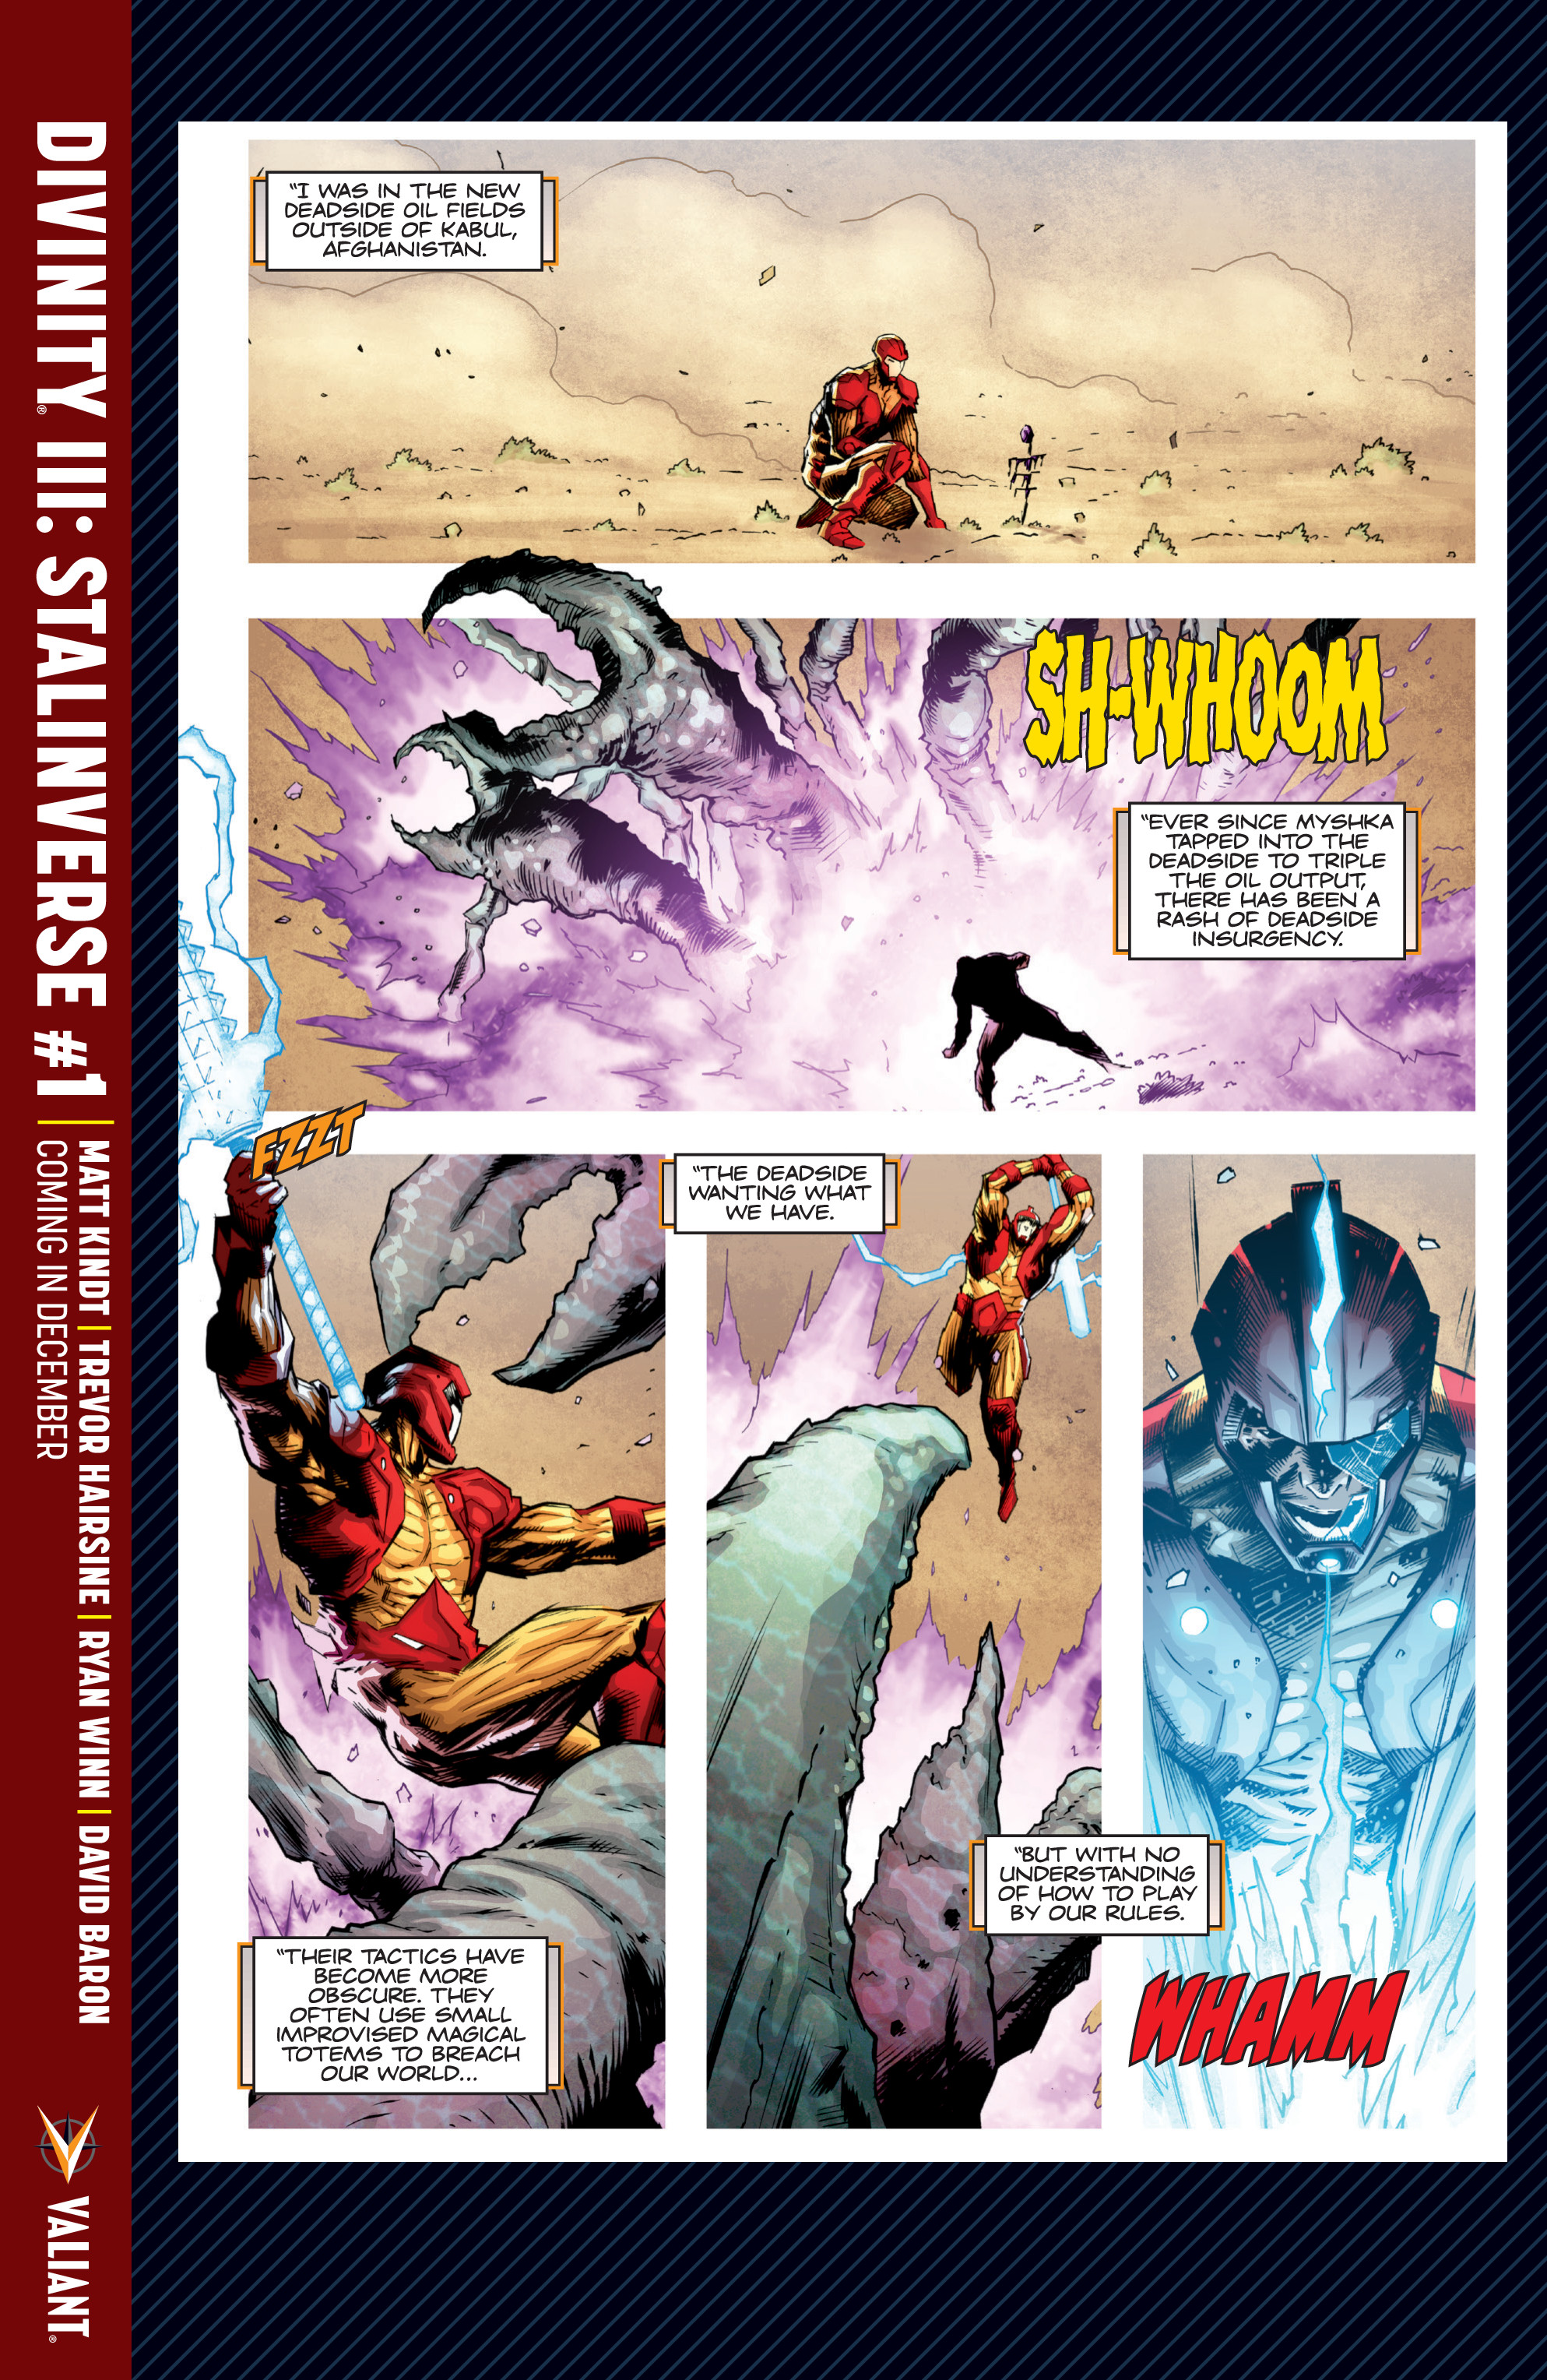 Read online Wrath of the Eternal Warrior comic -  Issue #14 - 25